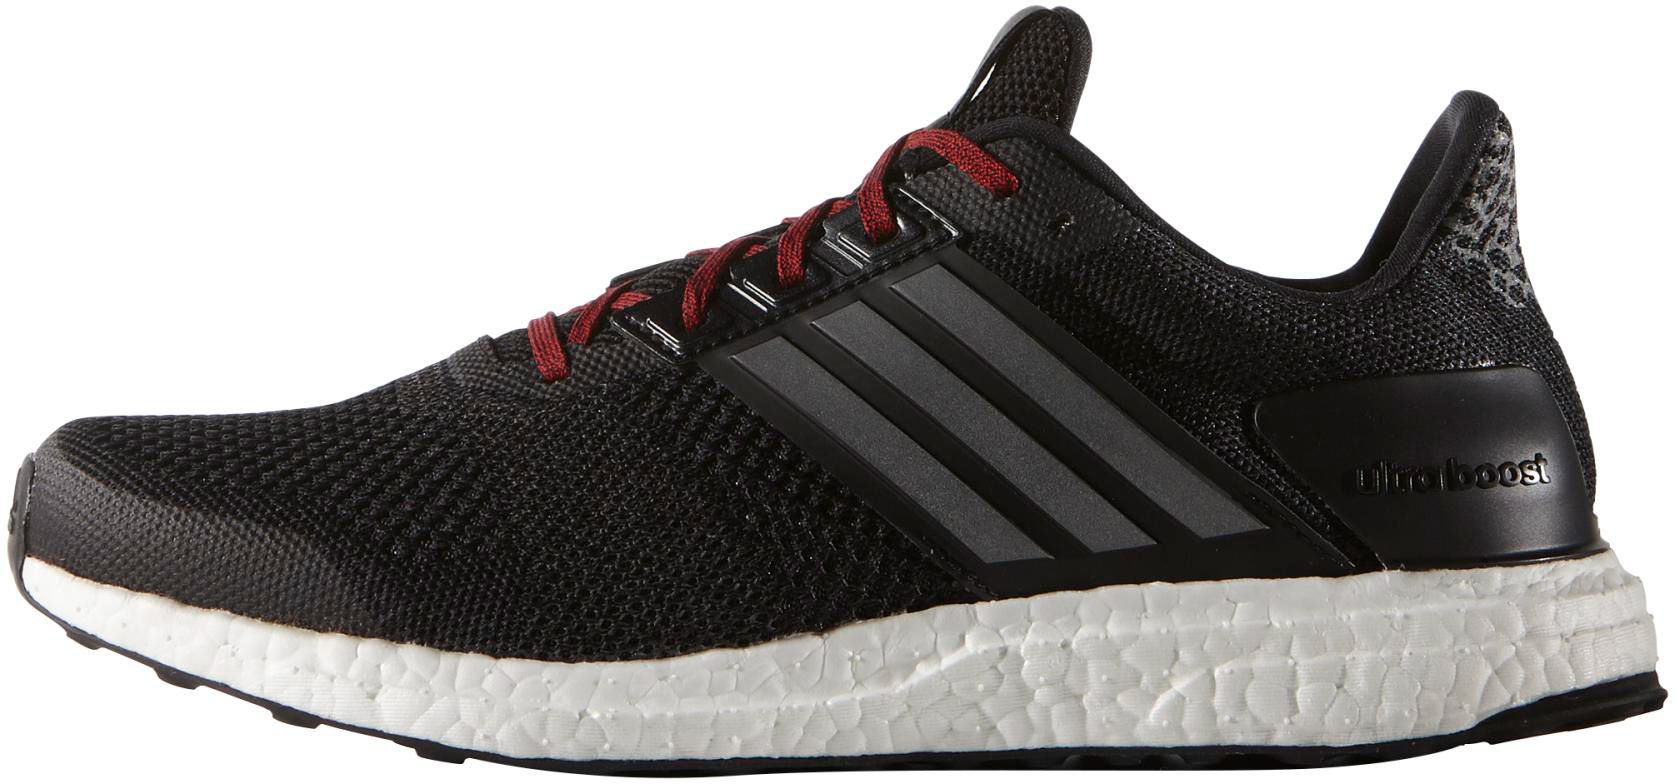 Adidas Ultra Boost ST Shoes (SS16)